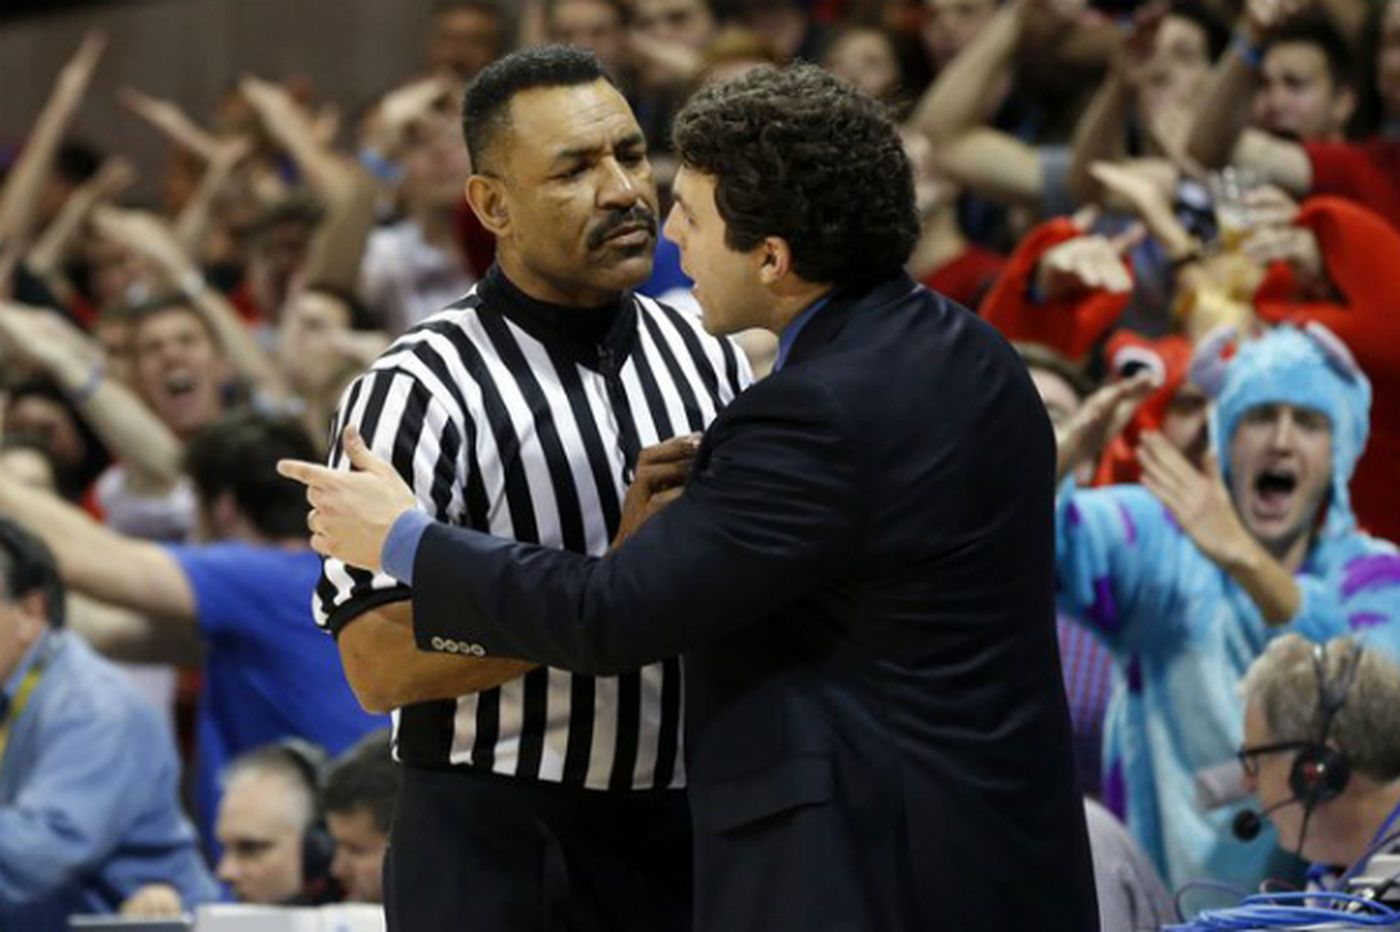 Former St. Joe's player to officiate in Final Four